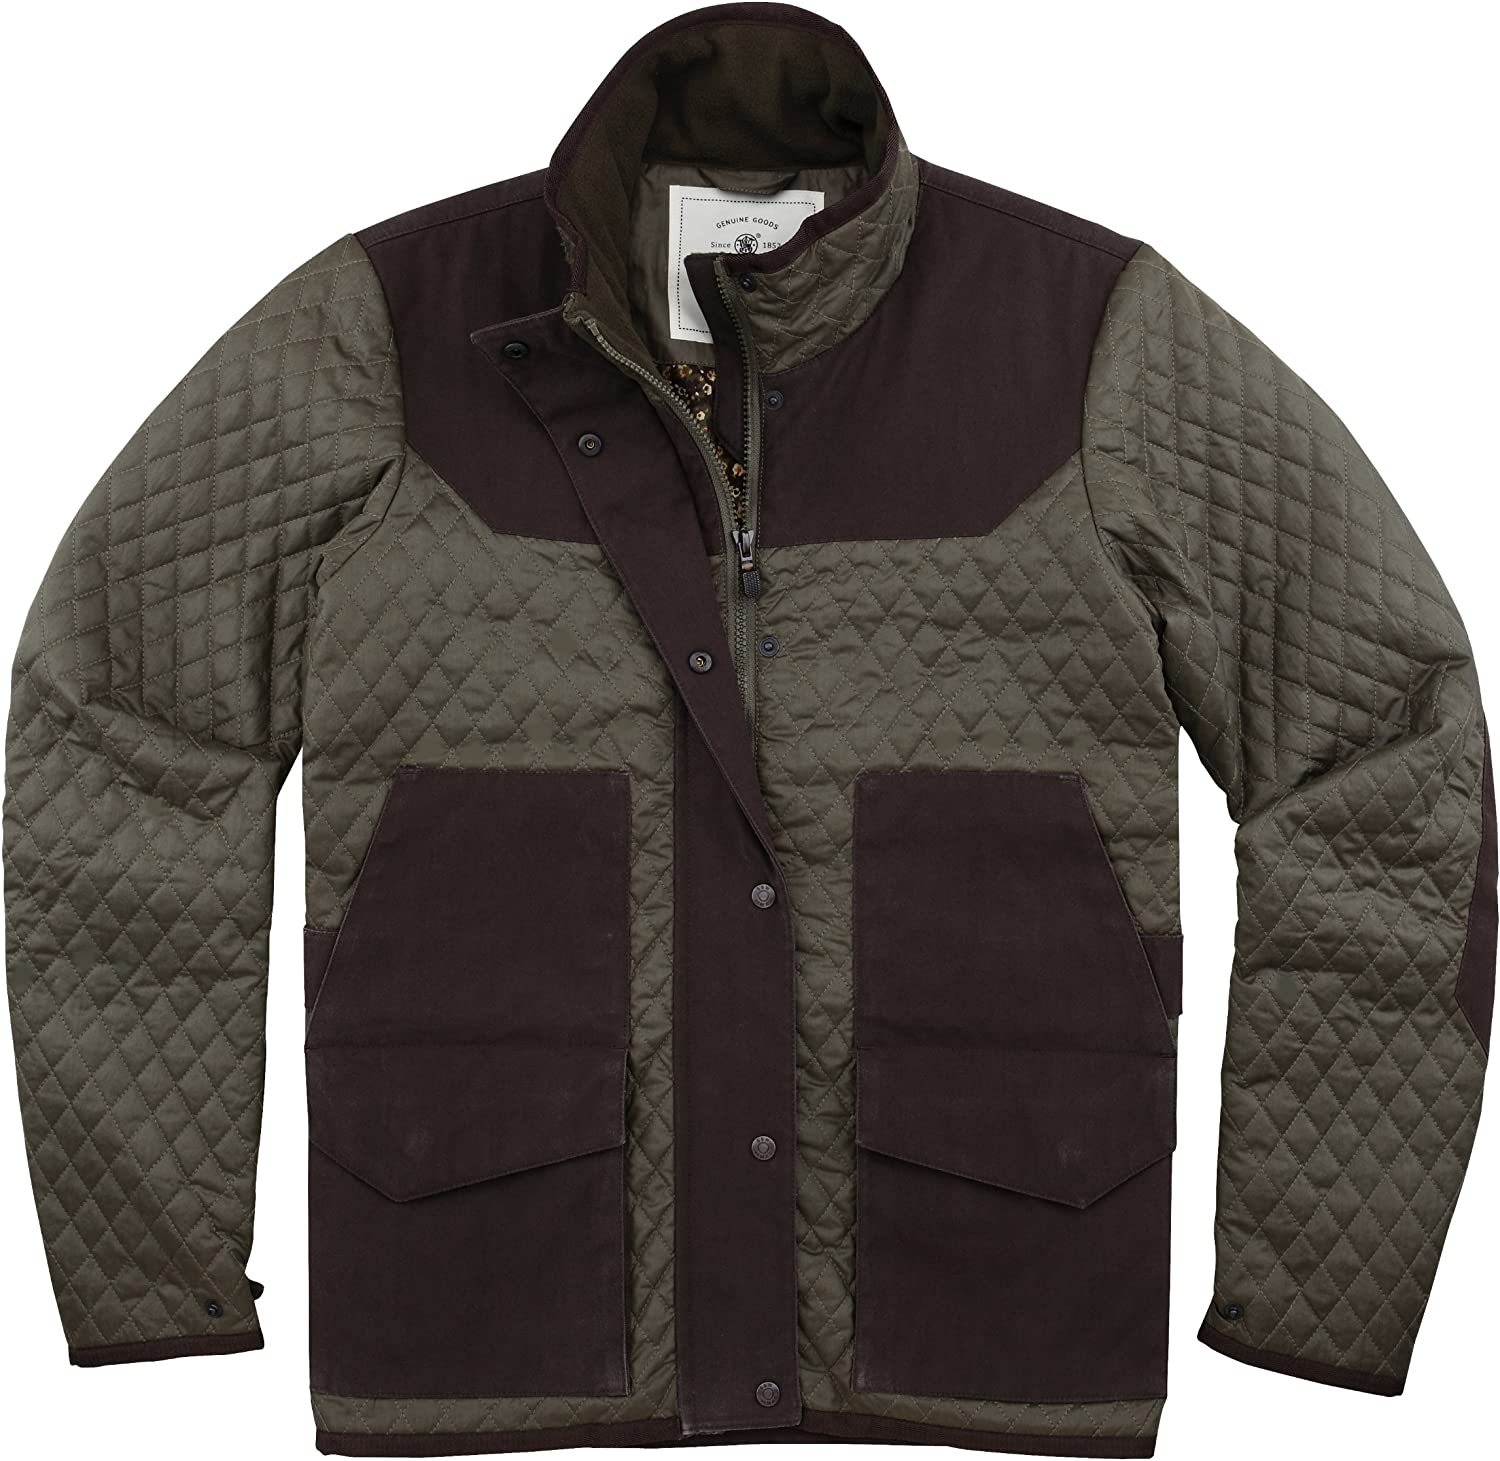 Smith & Wesson Women's Tracking Jacket